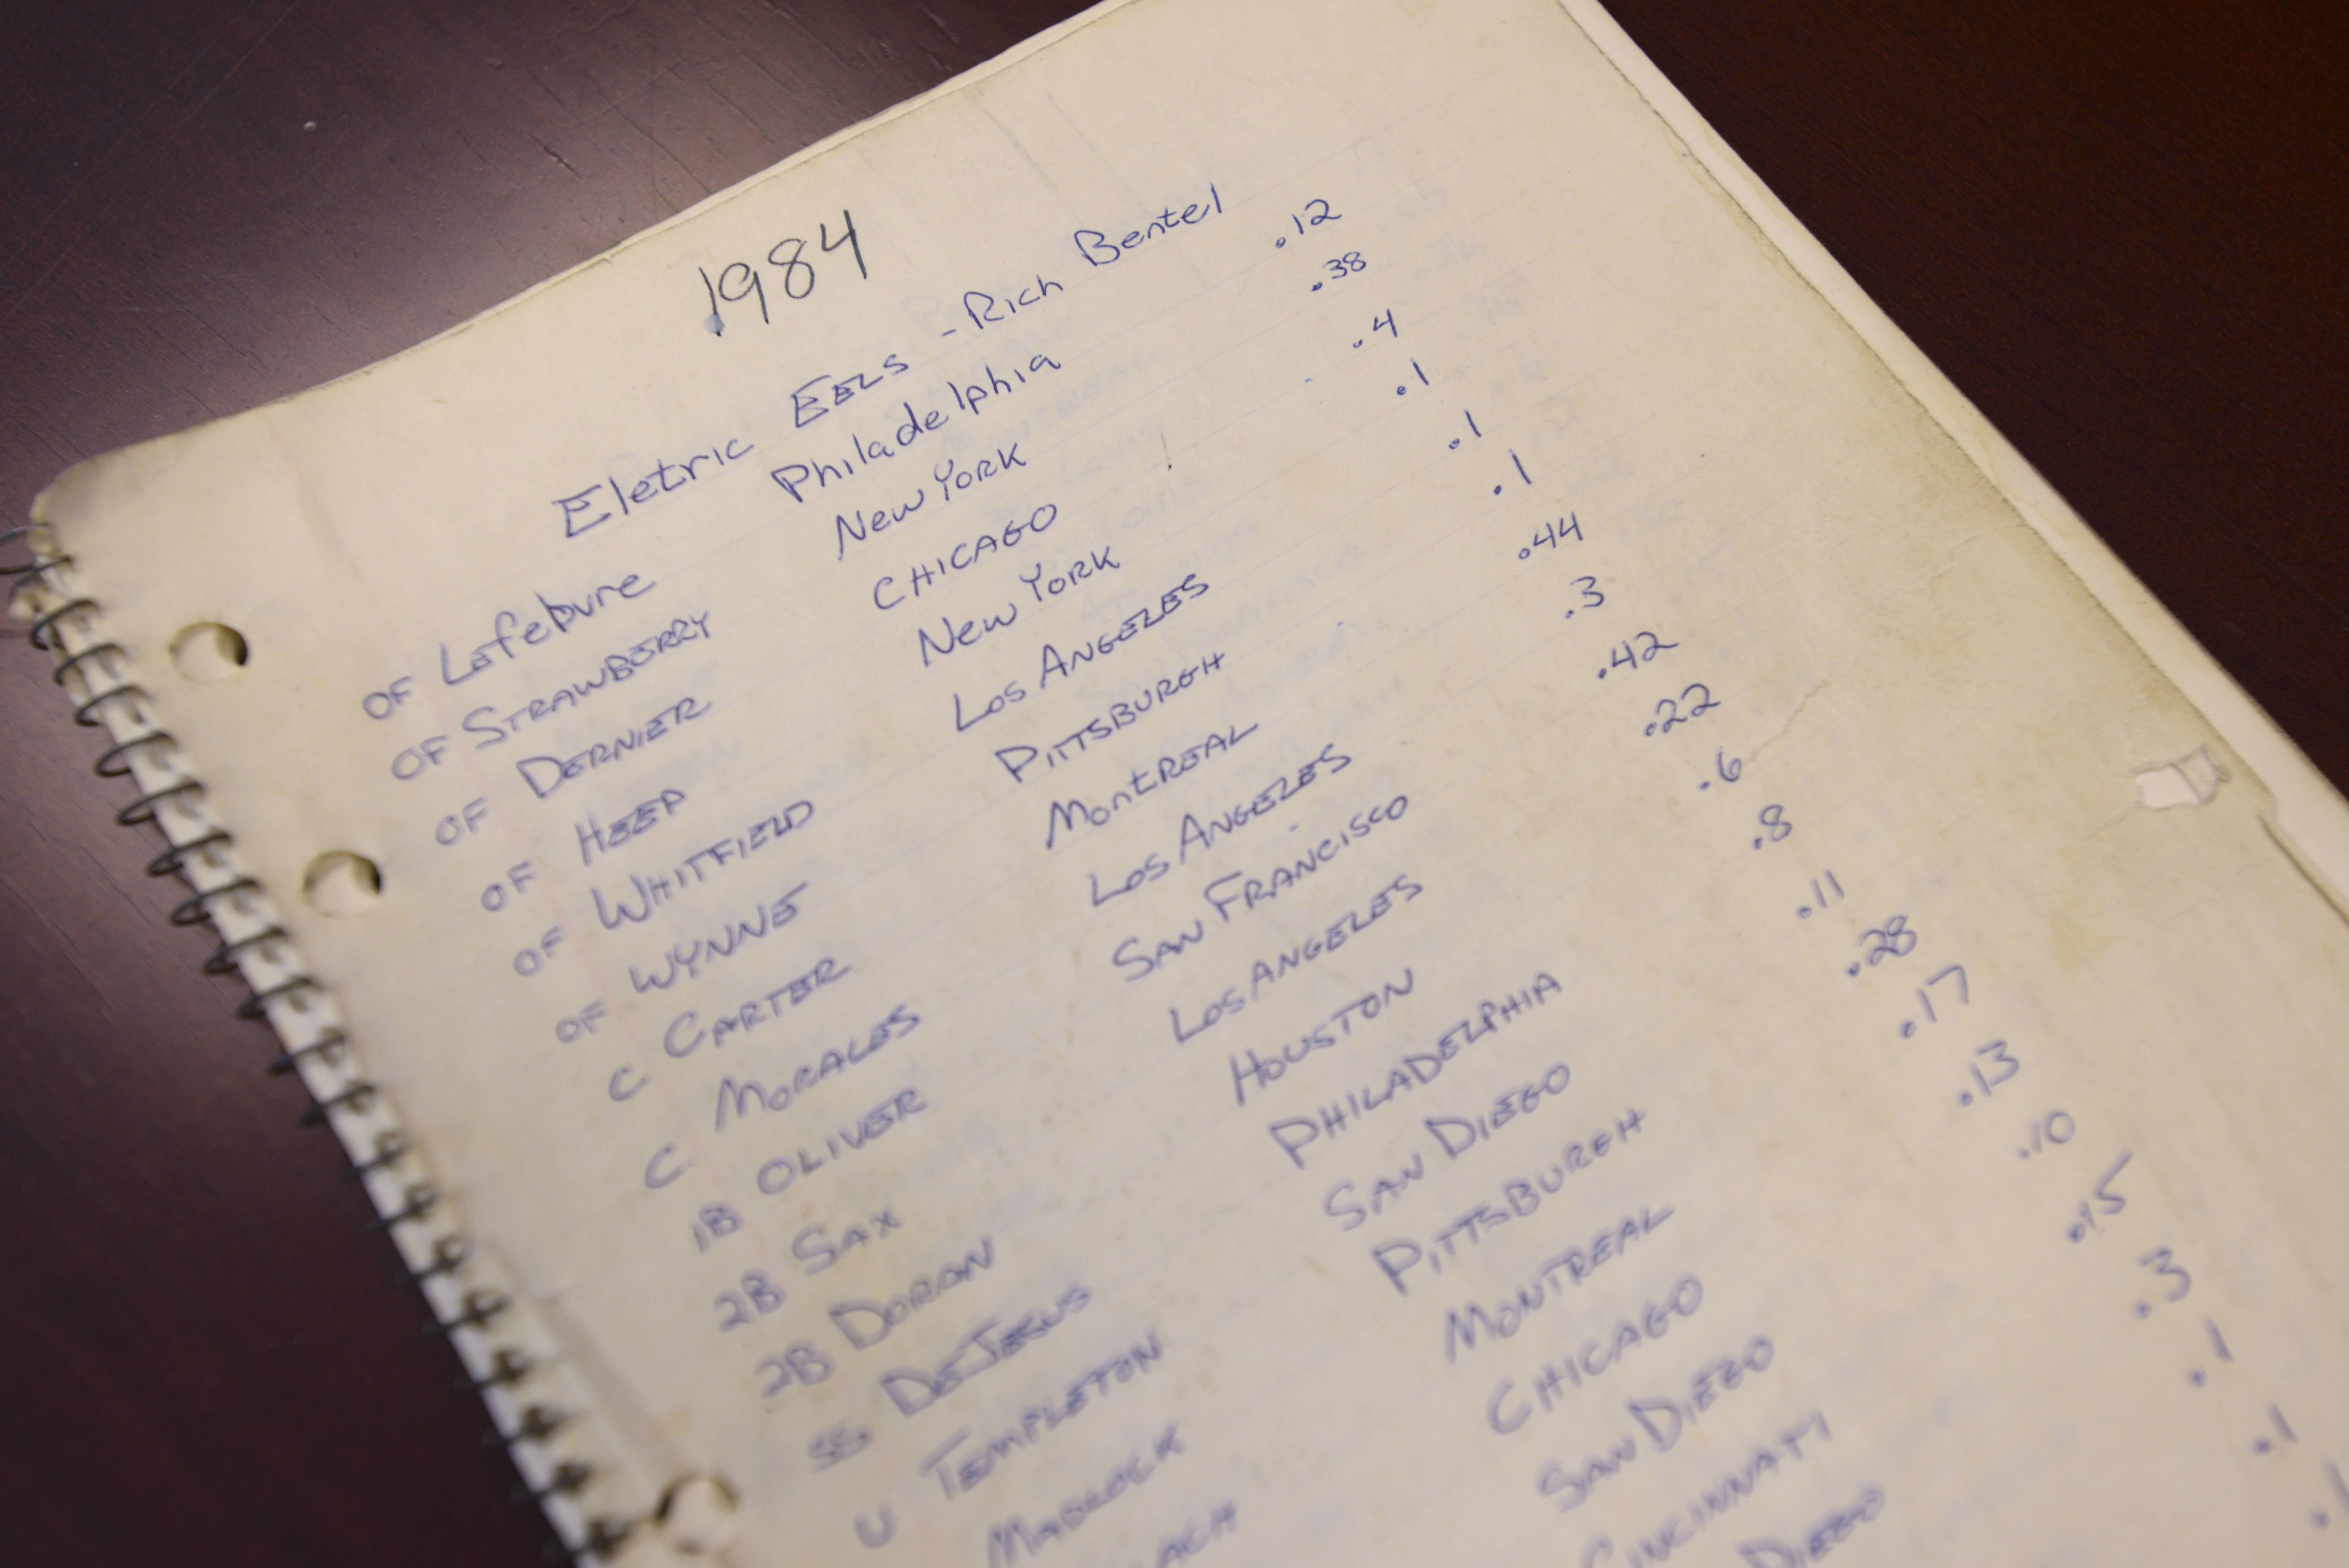 Yellowed by age, this spiral notebook contains all the players and statistics from 1984, when Rich Bentel and his buddy David Mahlan started a fantasy baseball league that still is going strong.